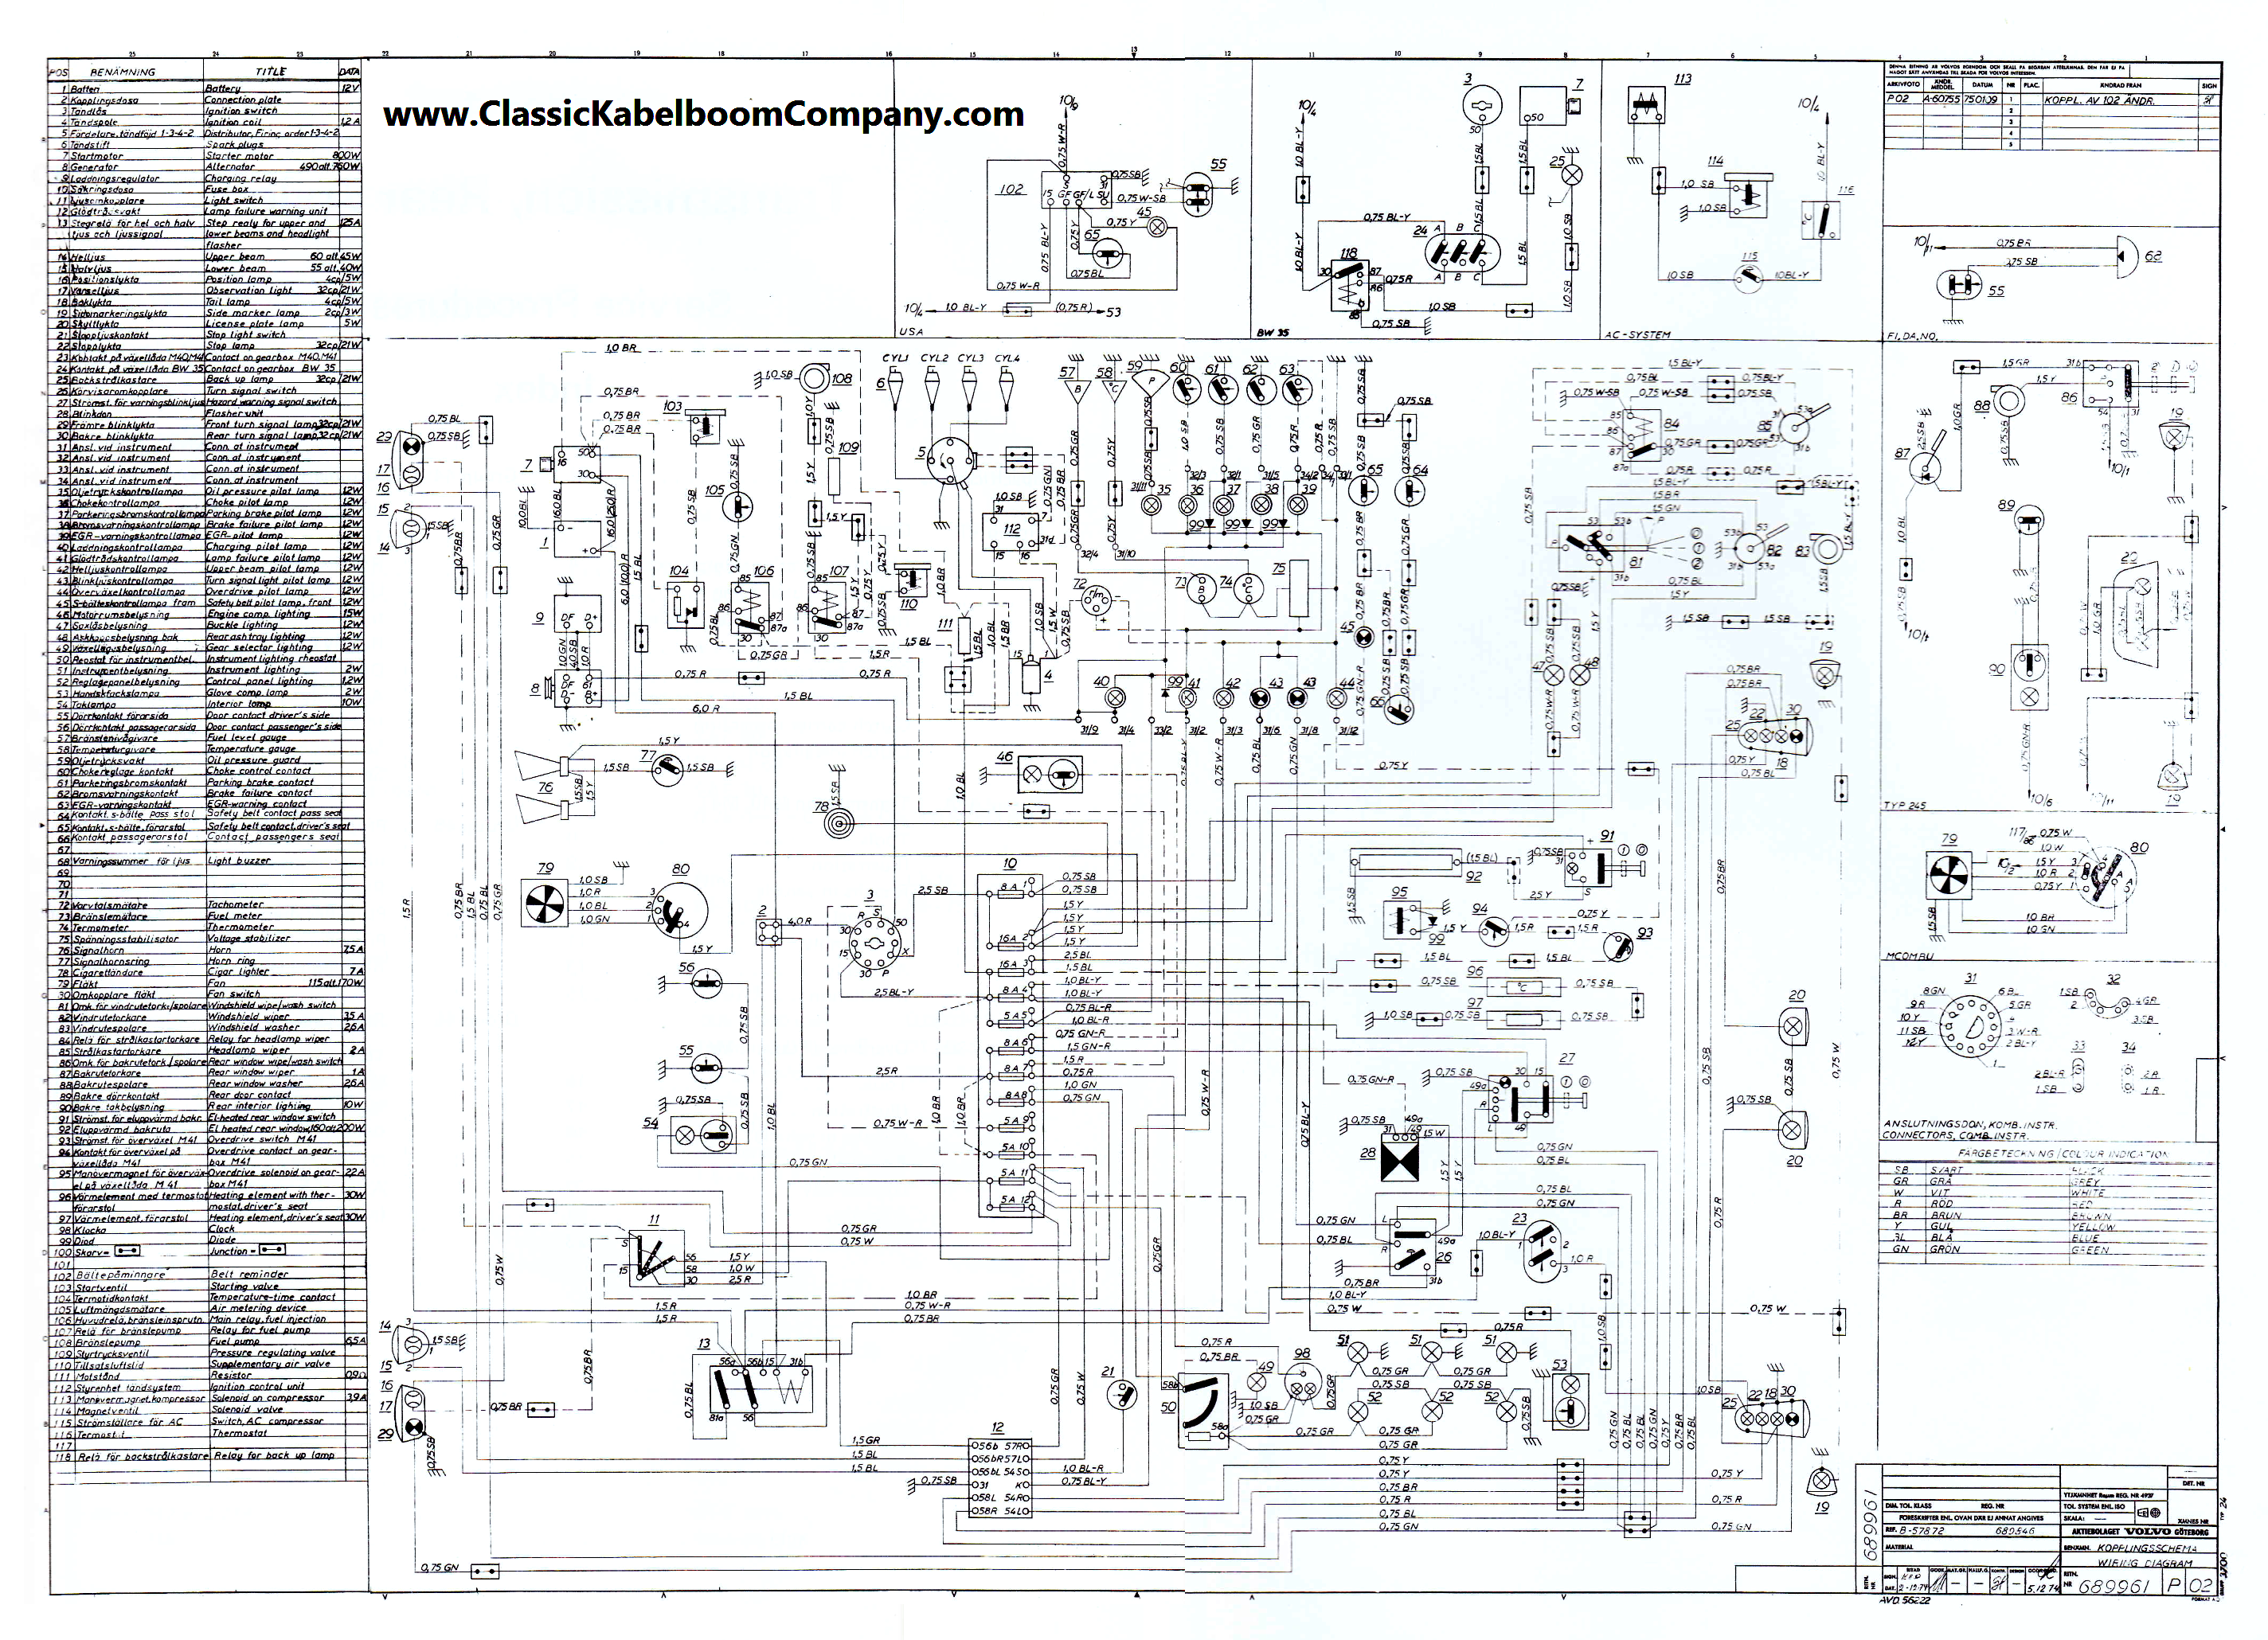 vol40?cdp=a classic kabelboom company elektrisch bedrading schema volvo 92 Volvo 240 Fuse Box at webbmarketing.co